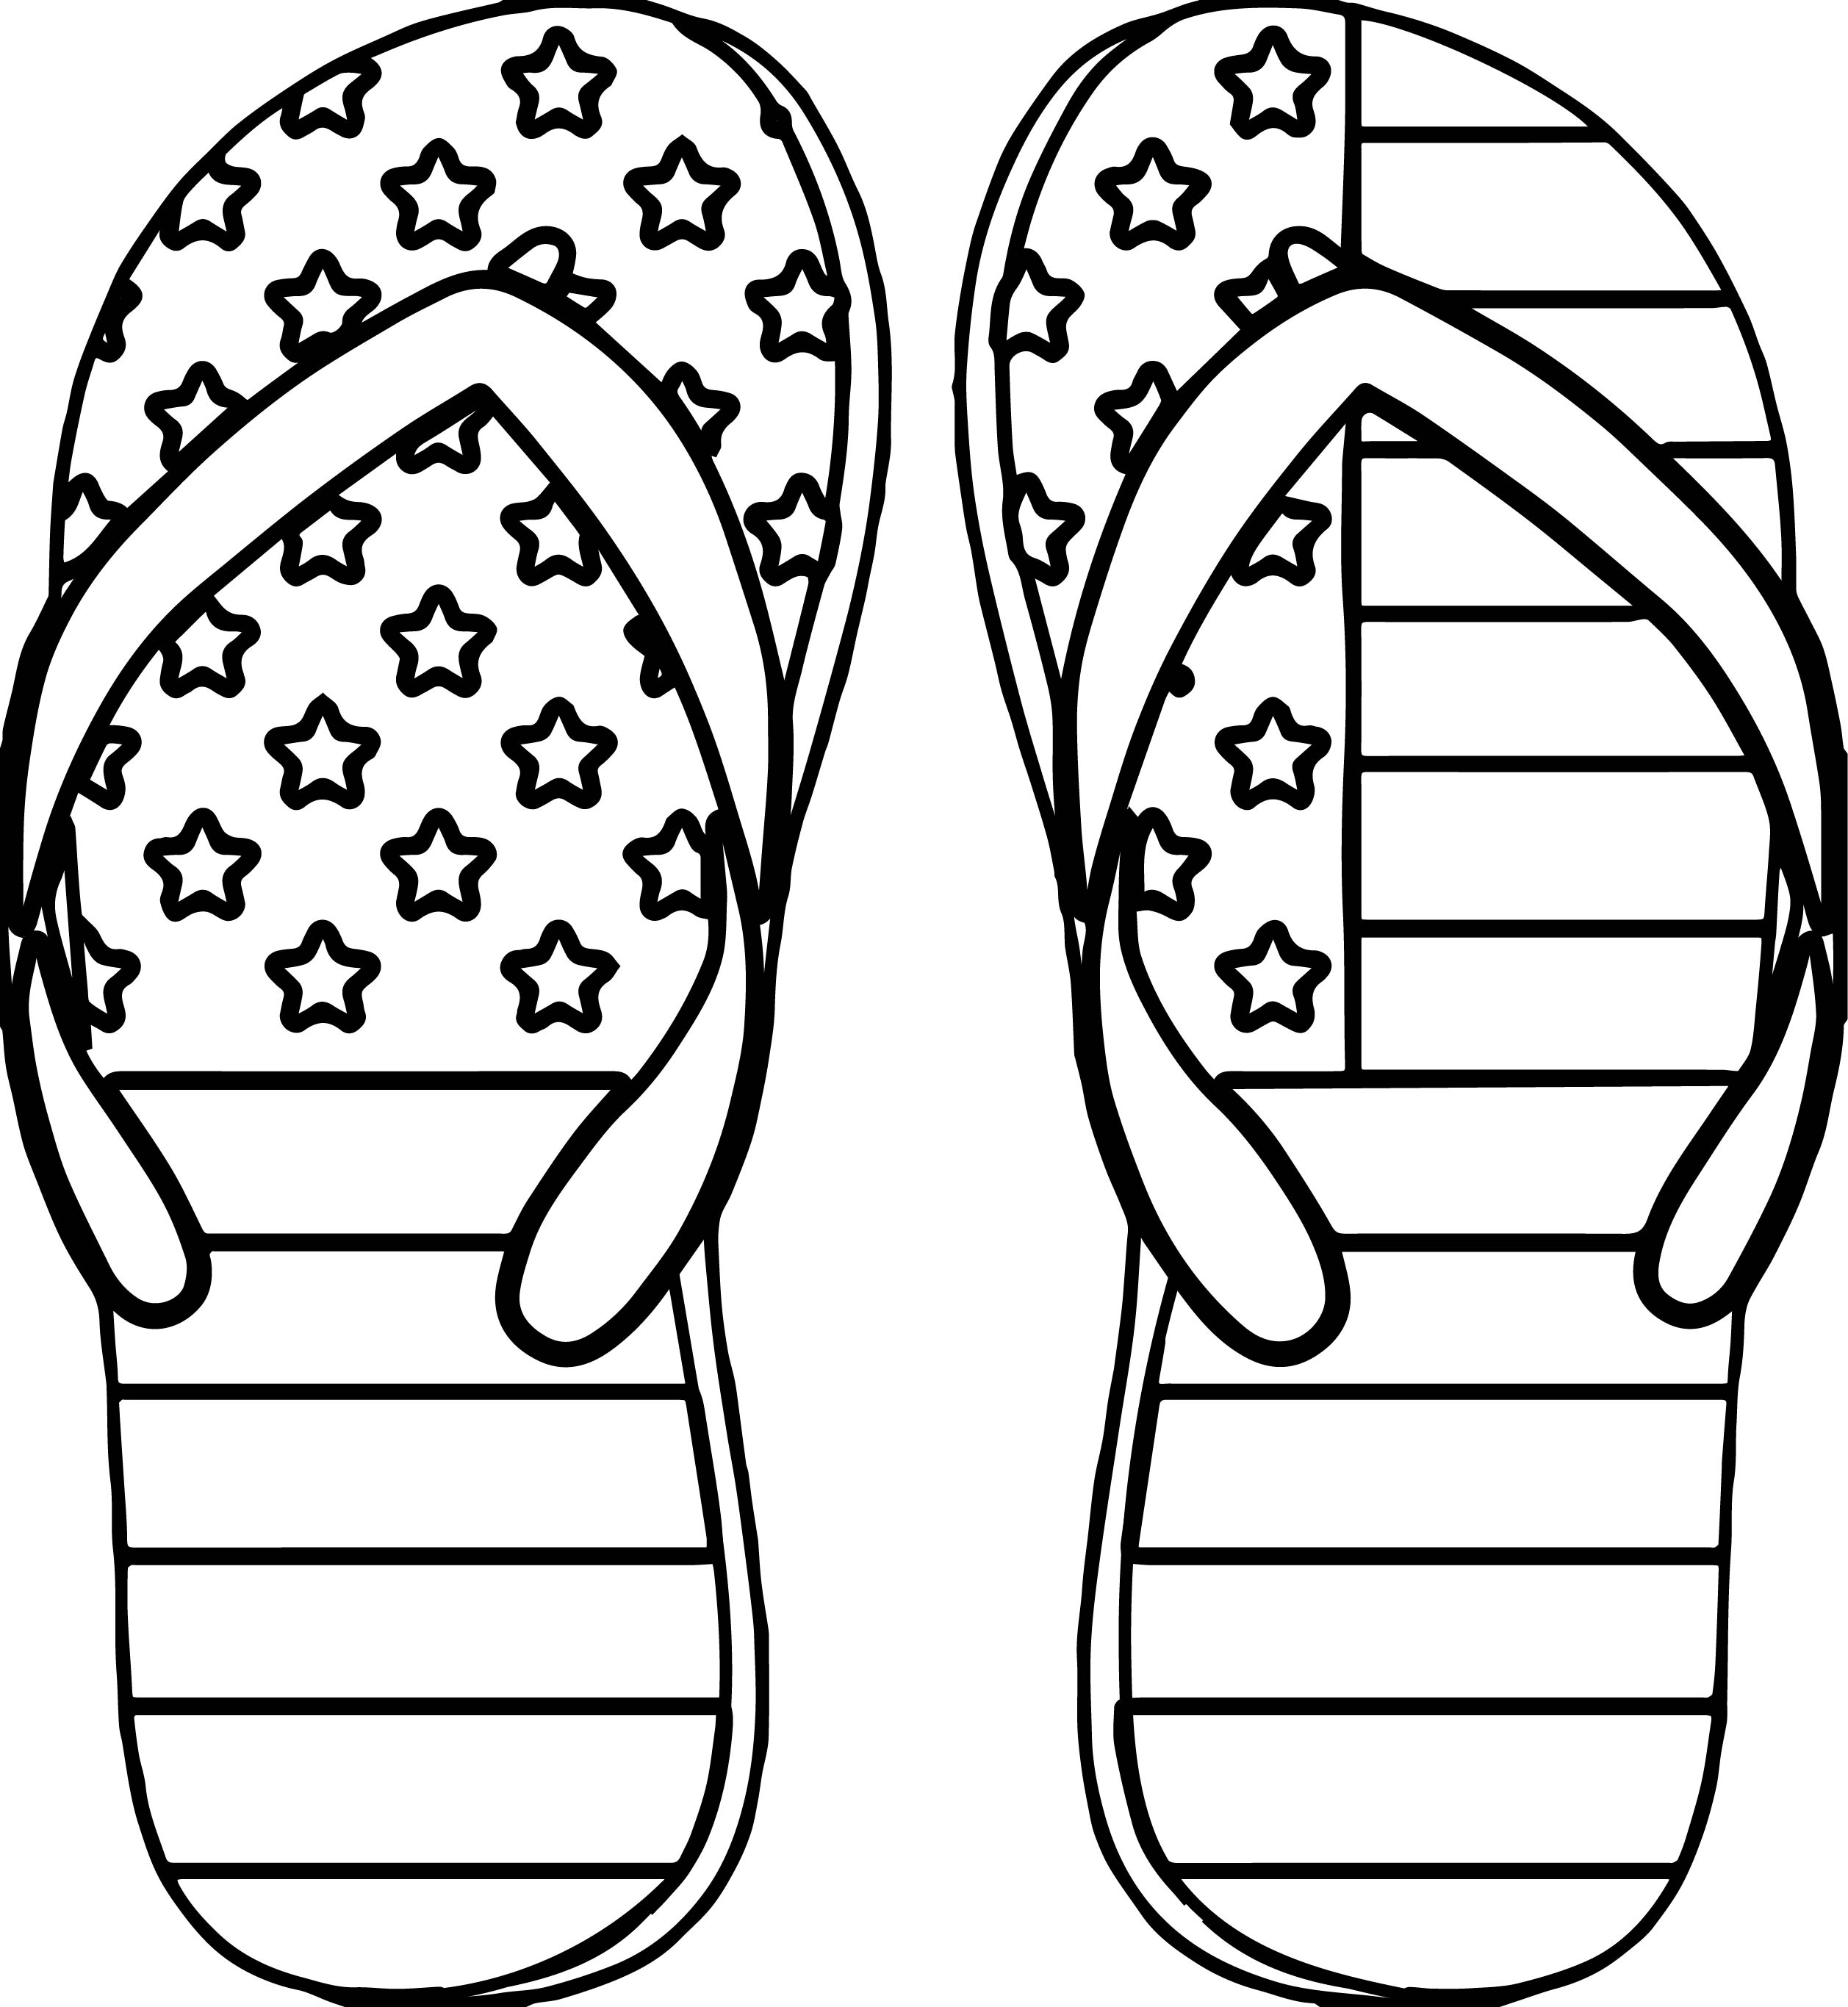 photograph about Free Printable 4th of July Coloring Pages known as July Coloring Webpages - Simplest Coloring Web pages For Small children